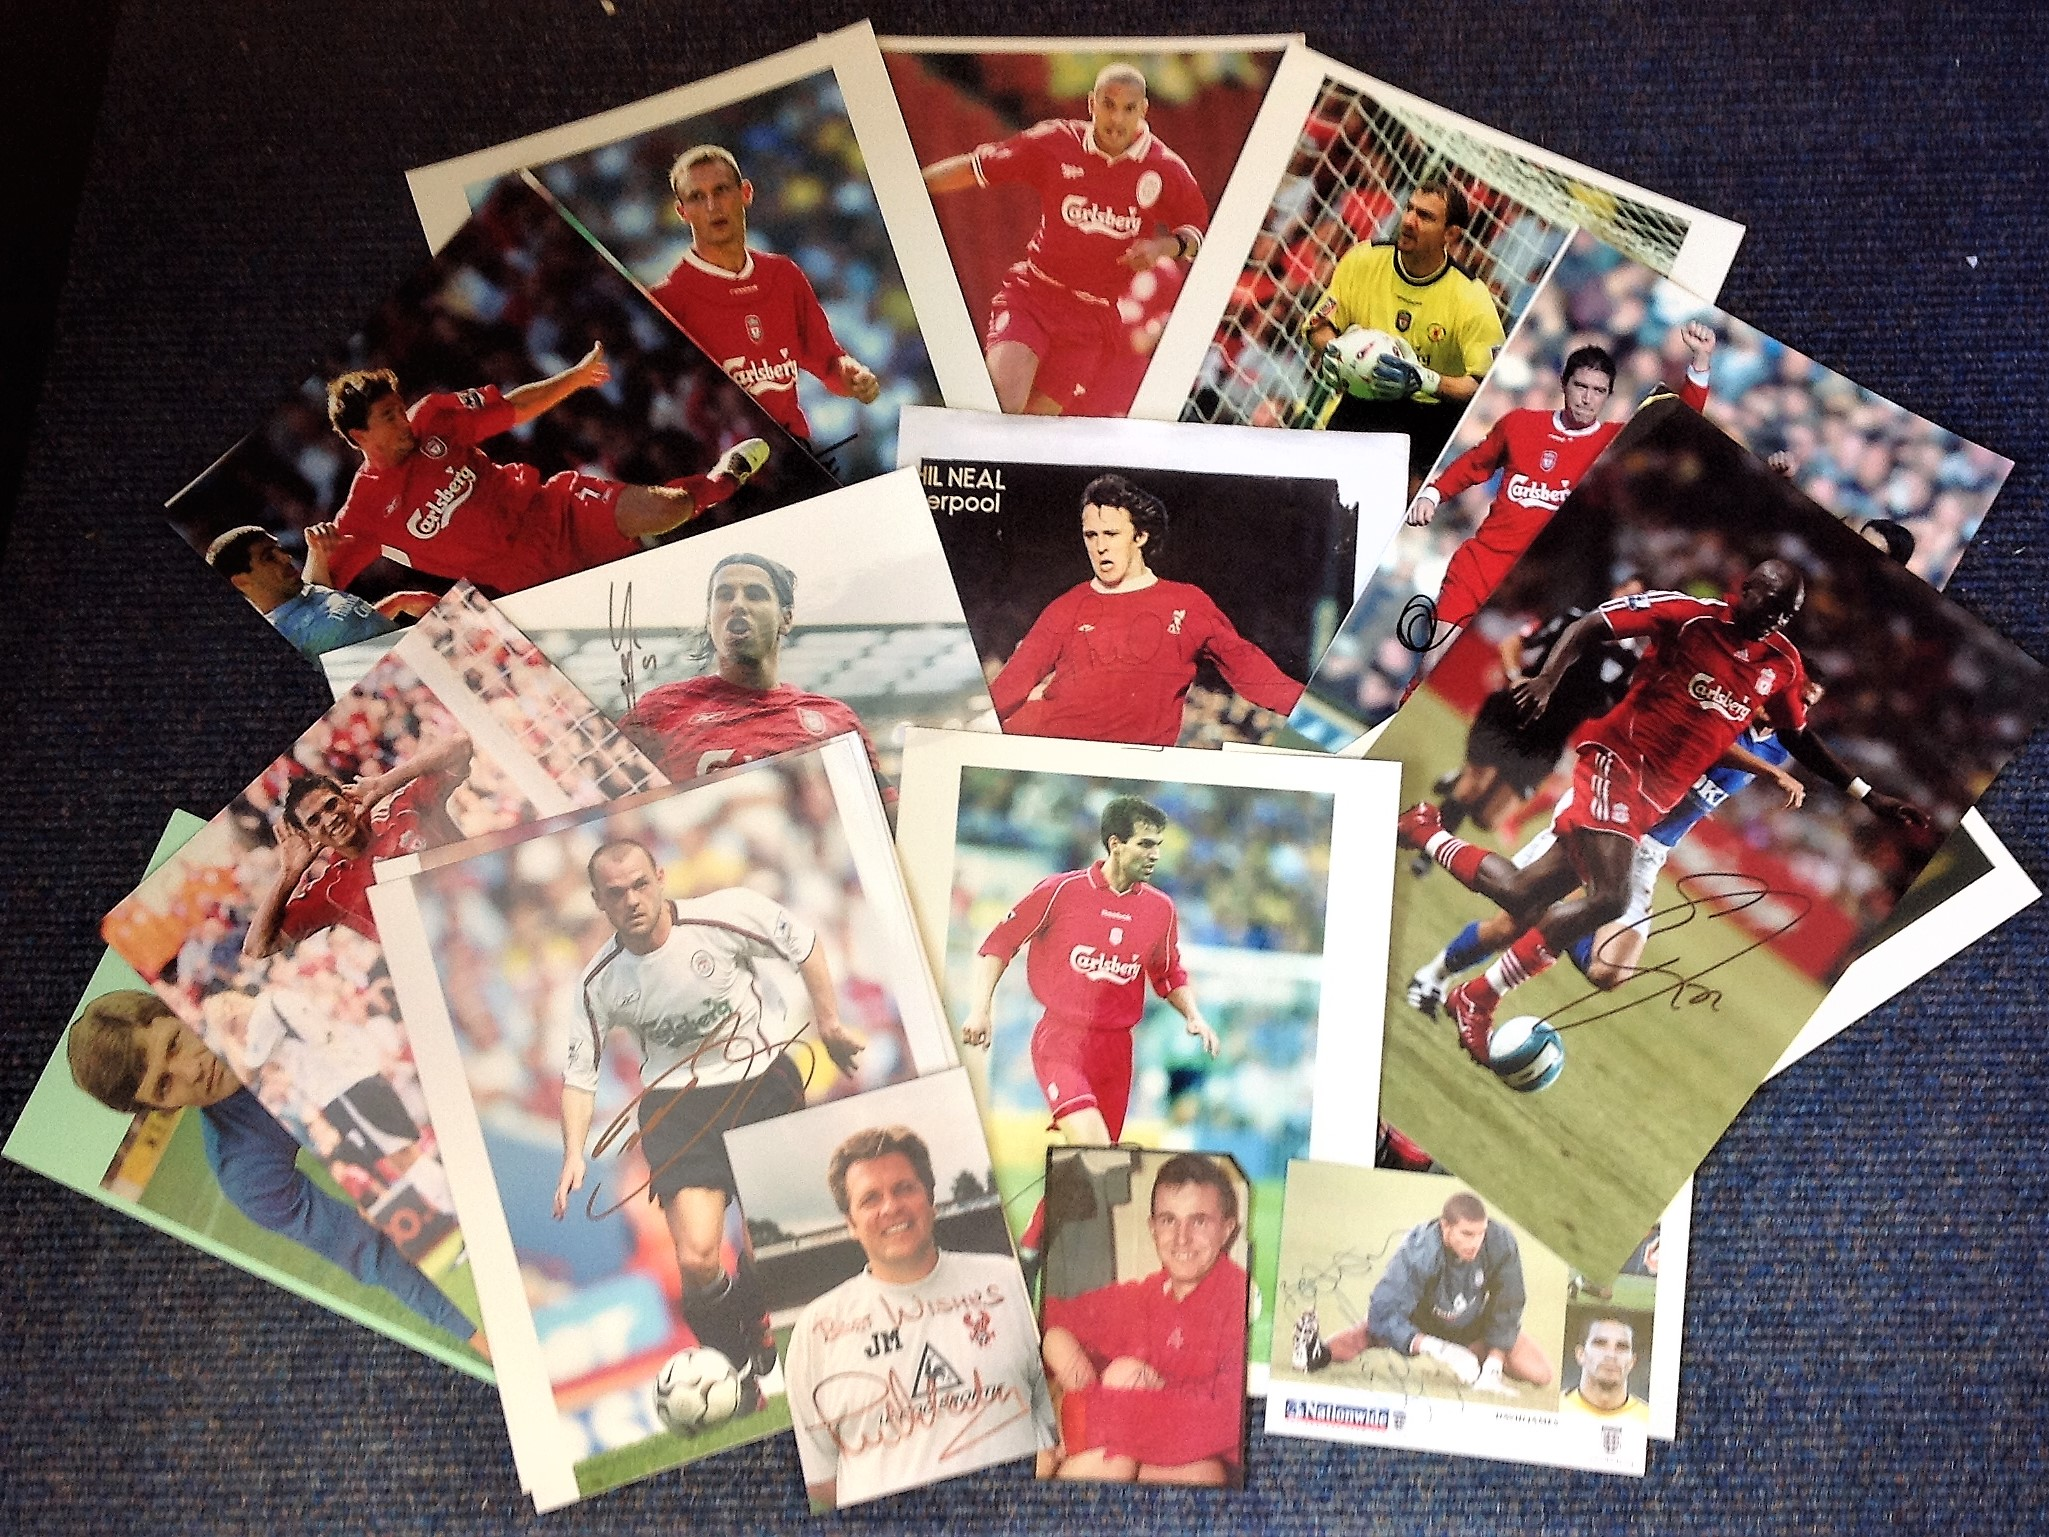 Lot 3 - Football Liverpool collection includes over 20 signatures of players from the past decades